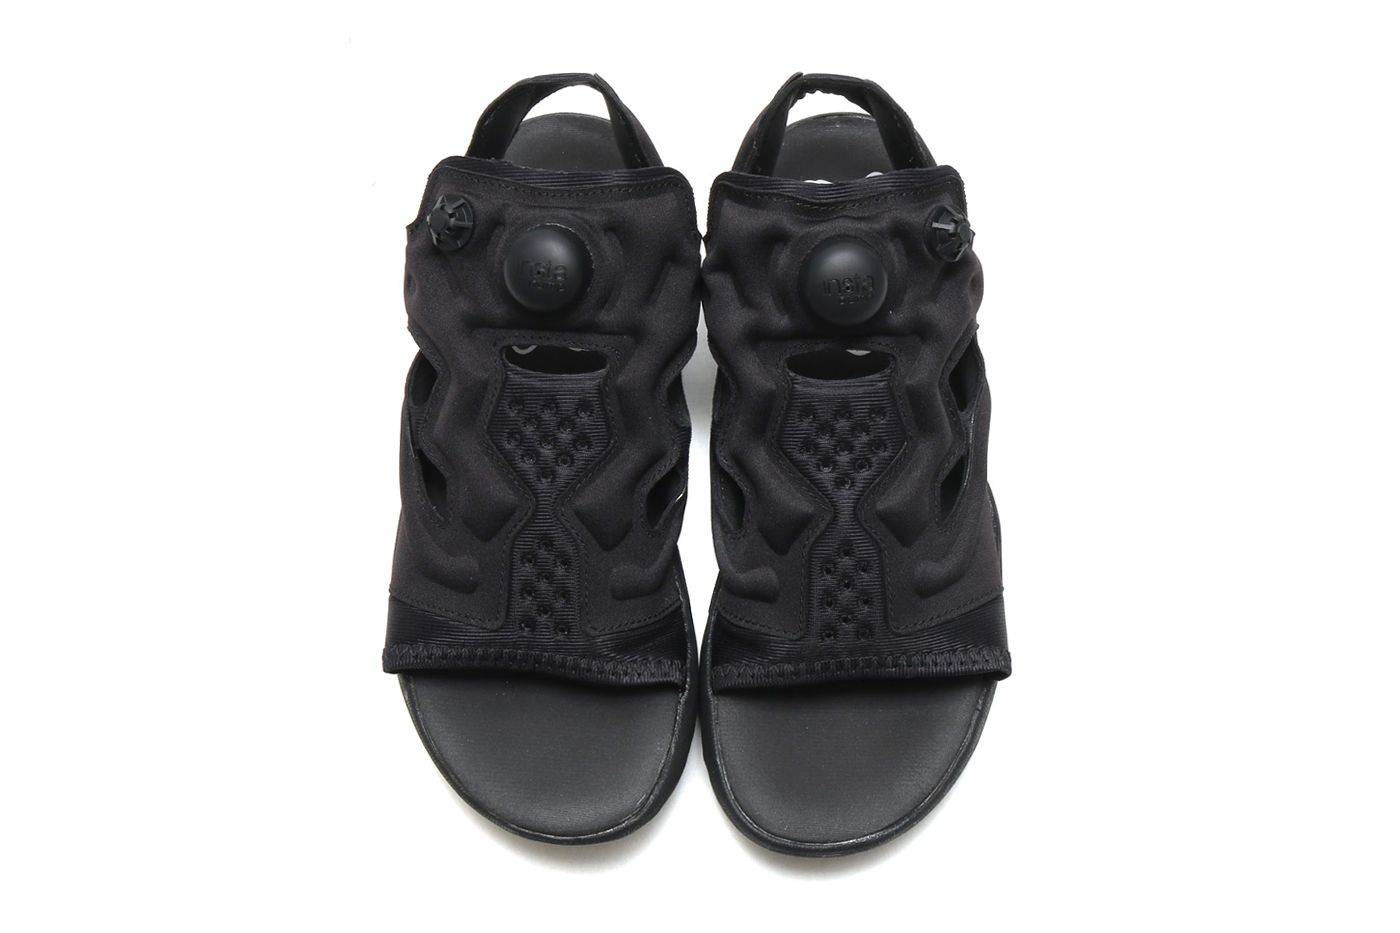 88427742c Reebok Unveils All Black Instapump Fury Sandal Hypebeast Drops. Reebok  Instapump Fury Og Black White End